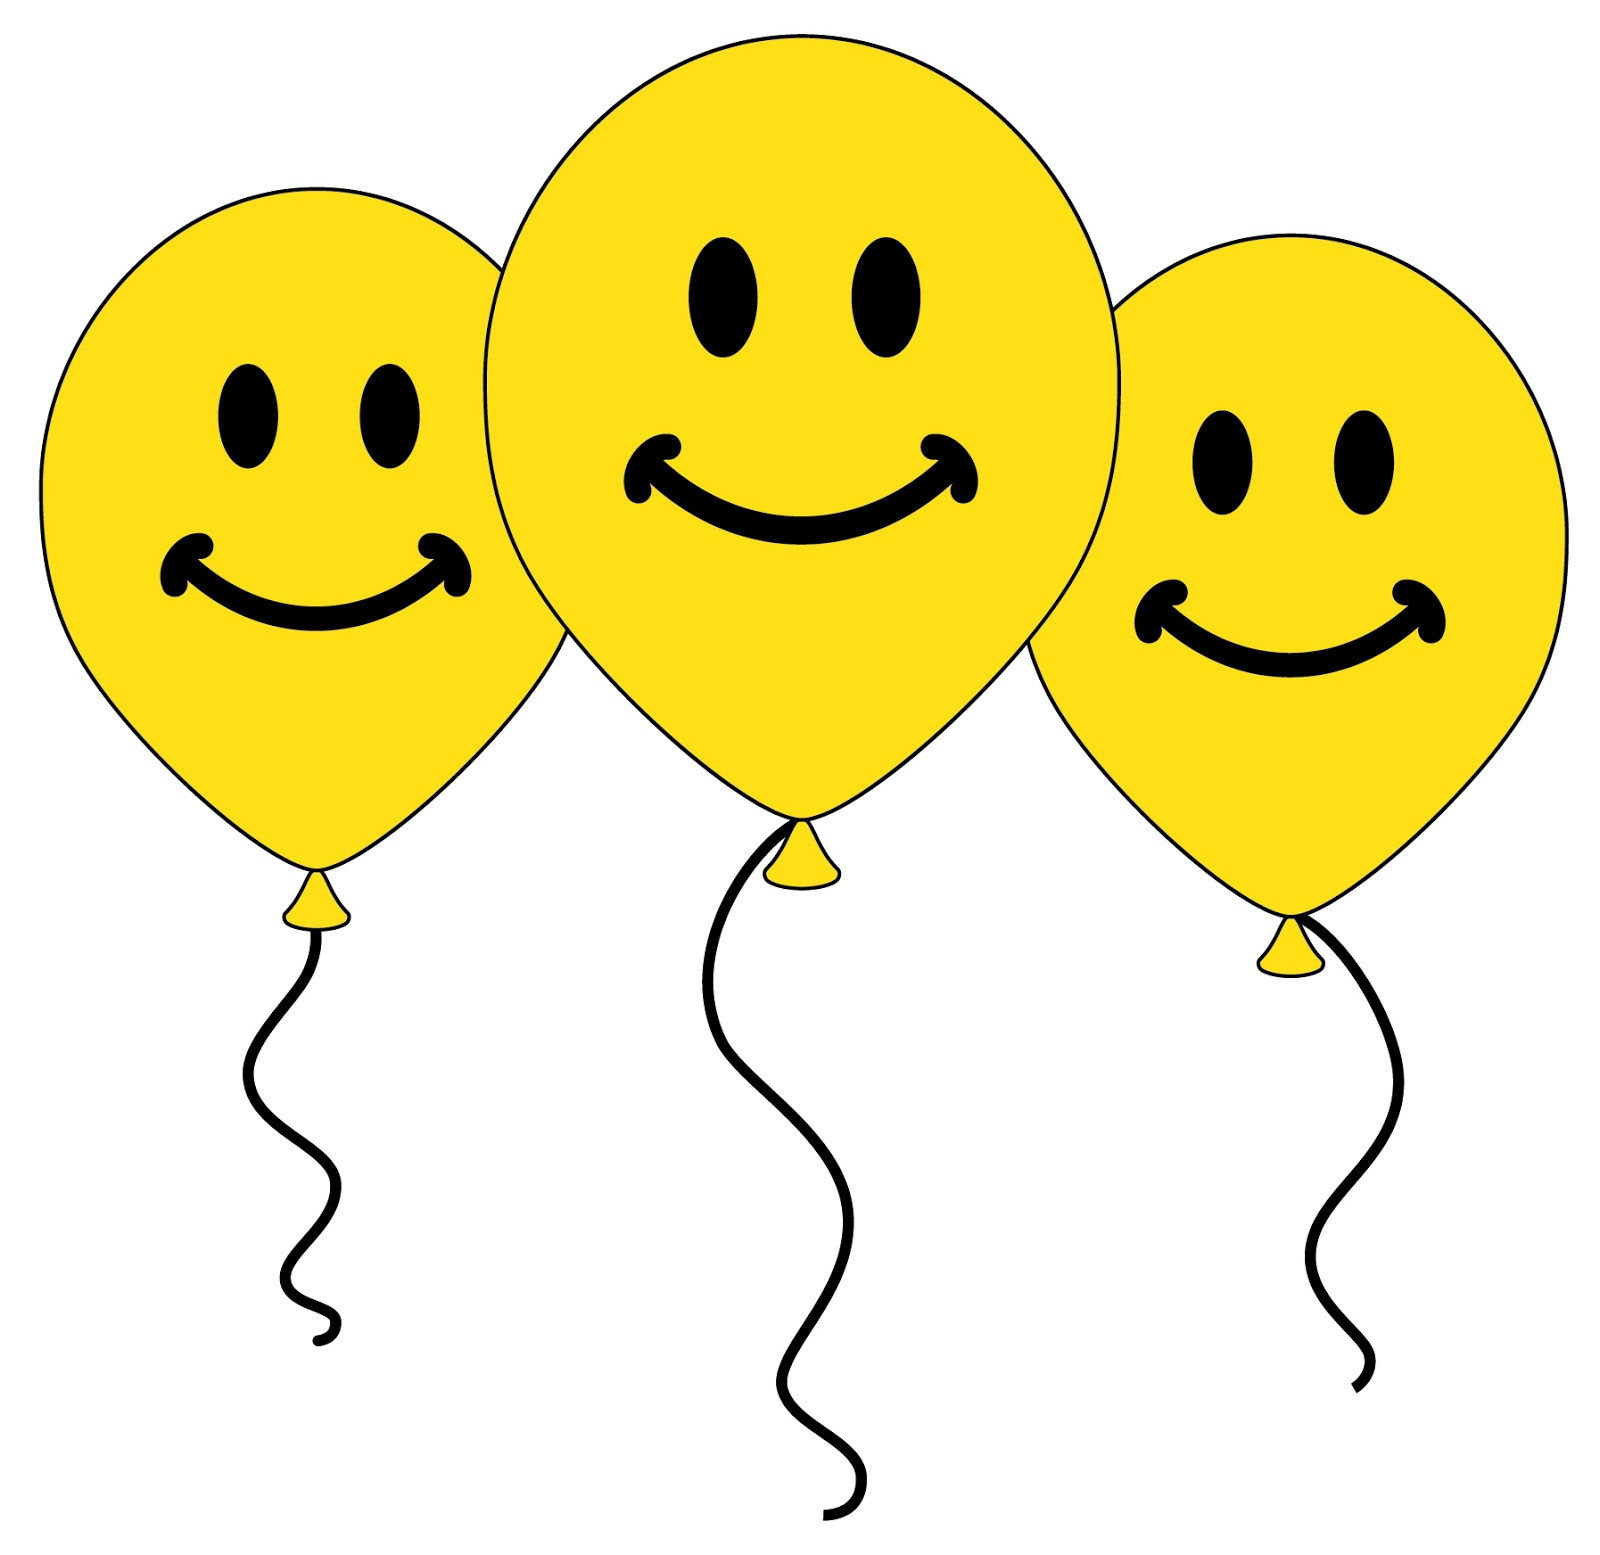 happy new year smiley face clip art - photo #37